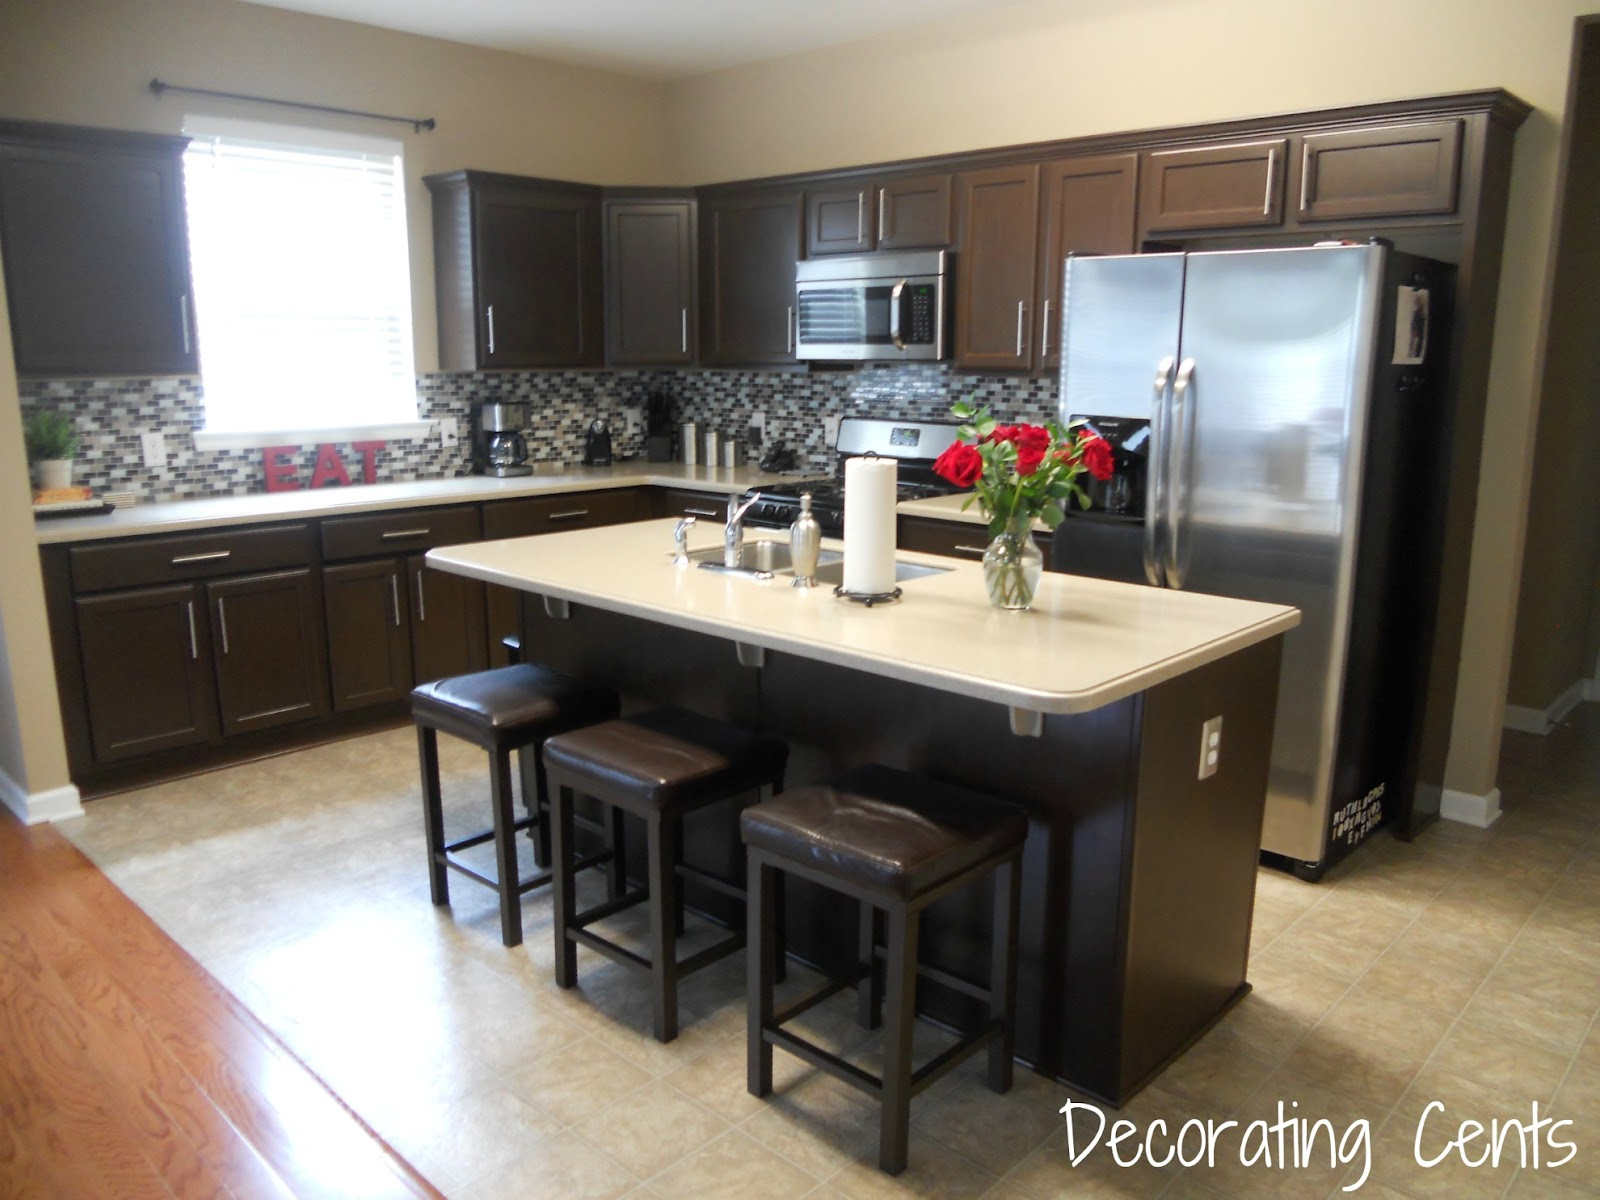 Decorating cents kitchen cabinets revealed for Dark brown painted kitchen cabinets